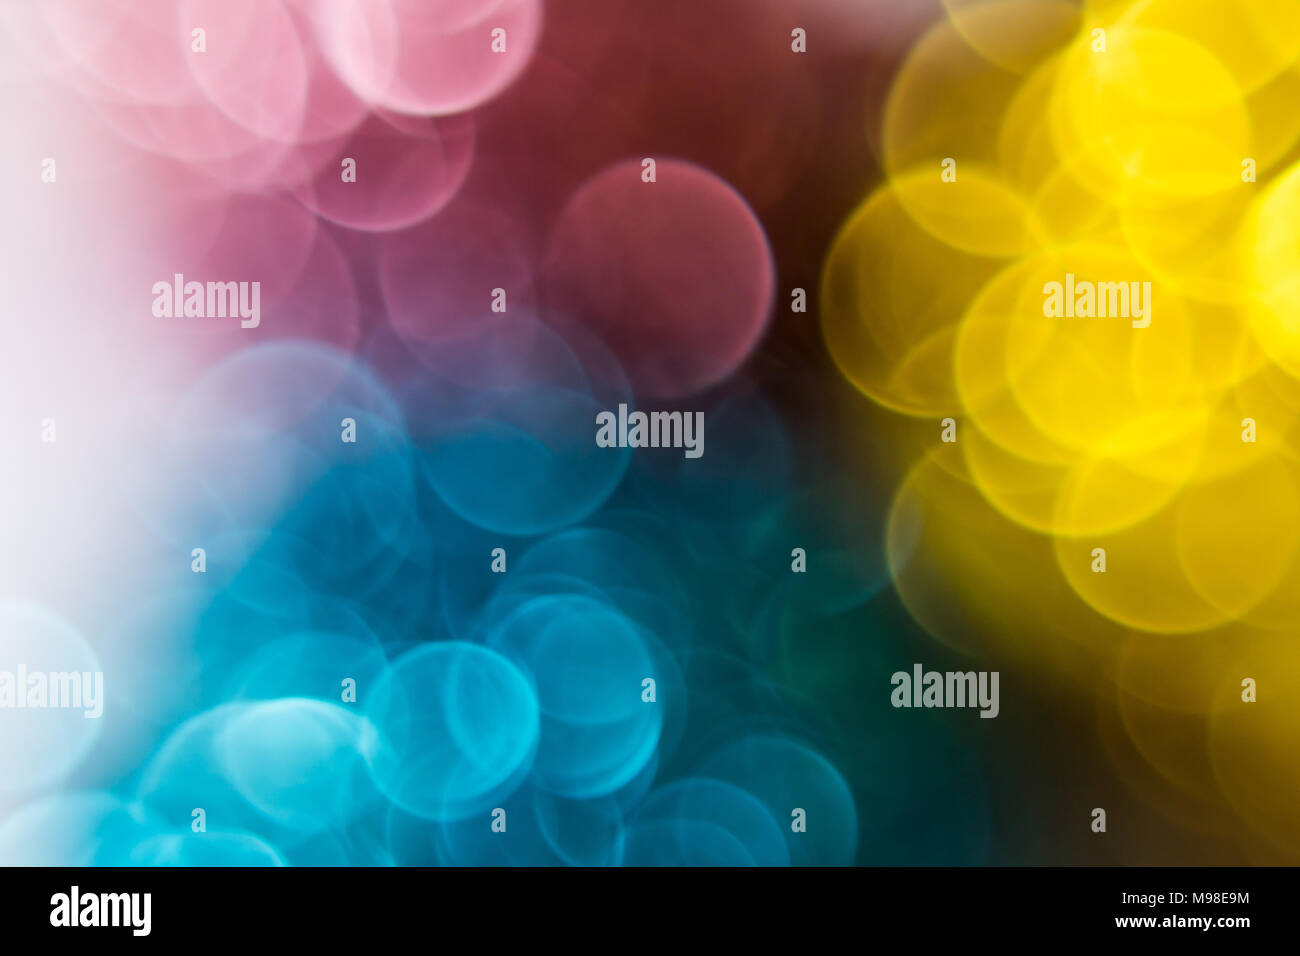 Unfocused blurry colorful lights - Stock Image